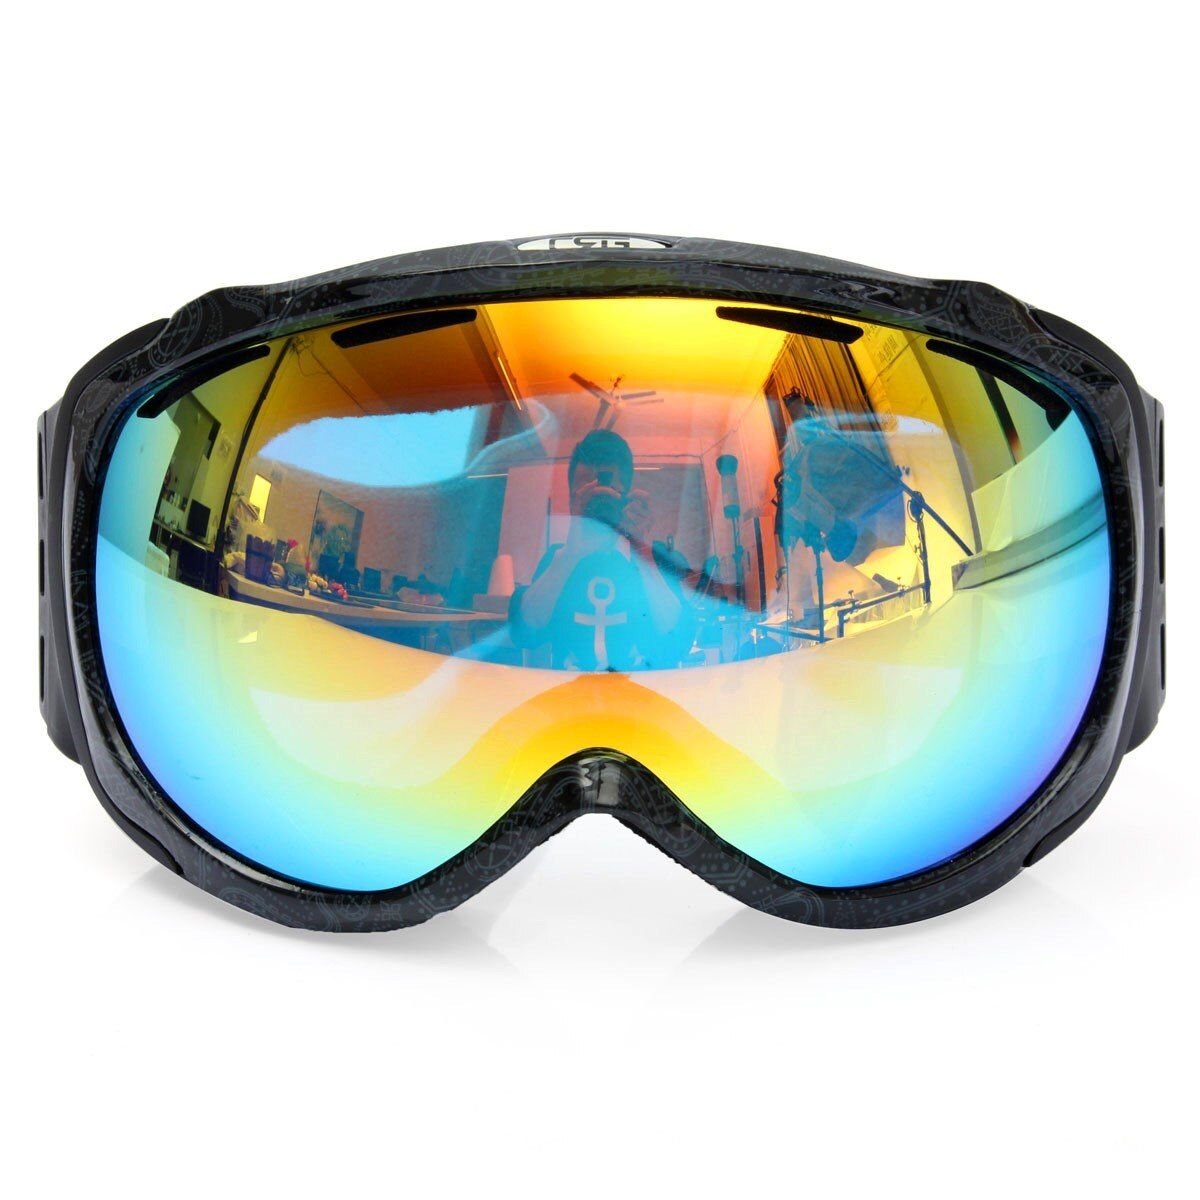 Unisex Professional Spherical Anti-fog Dual Lens Outdoor Snowboard Ski Goggles Eyewear Two Colors